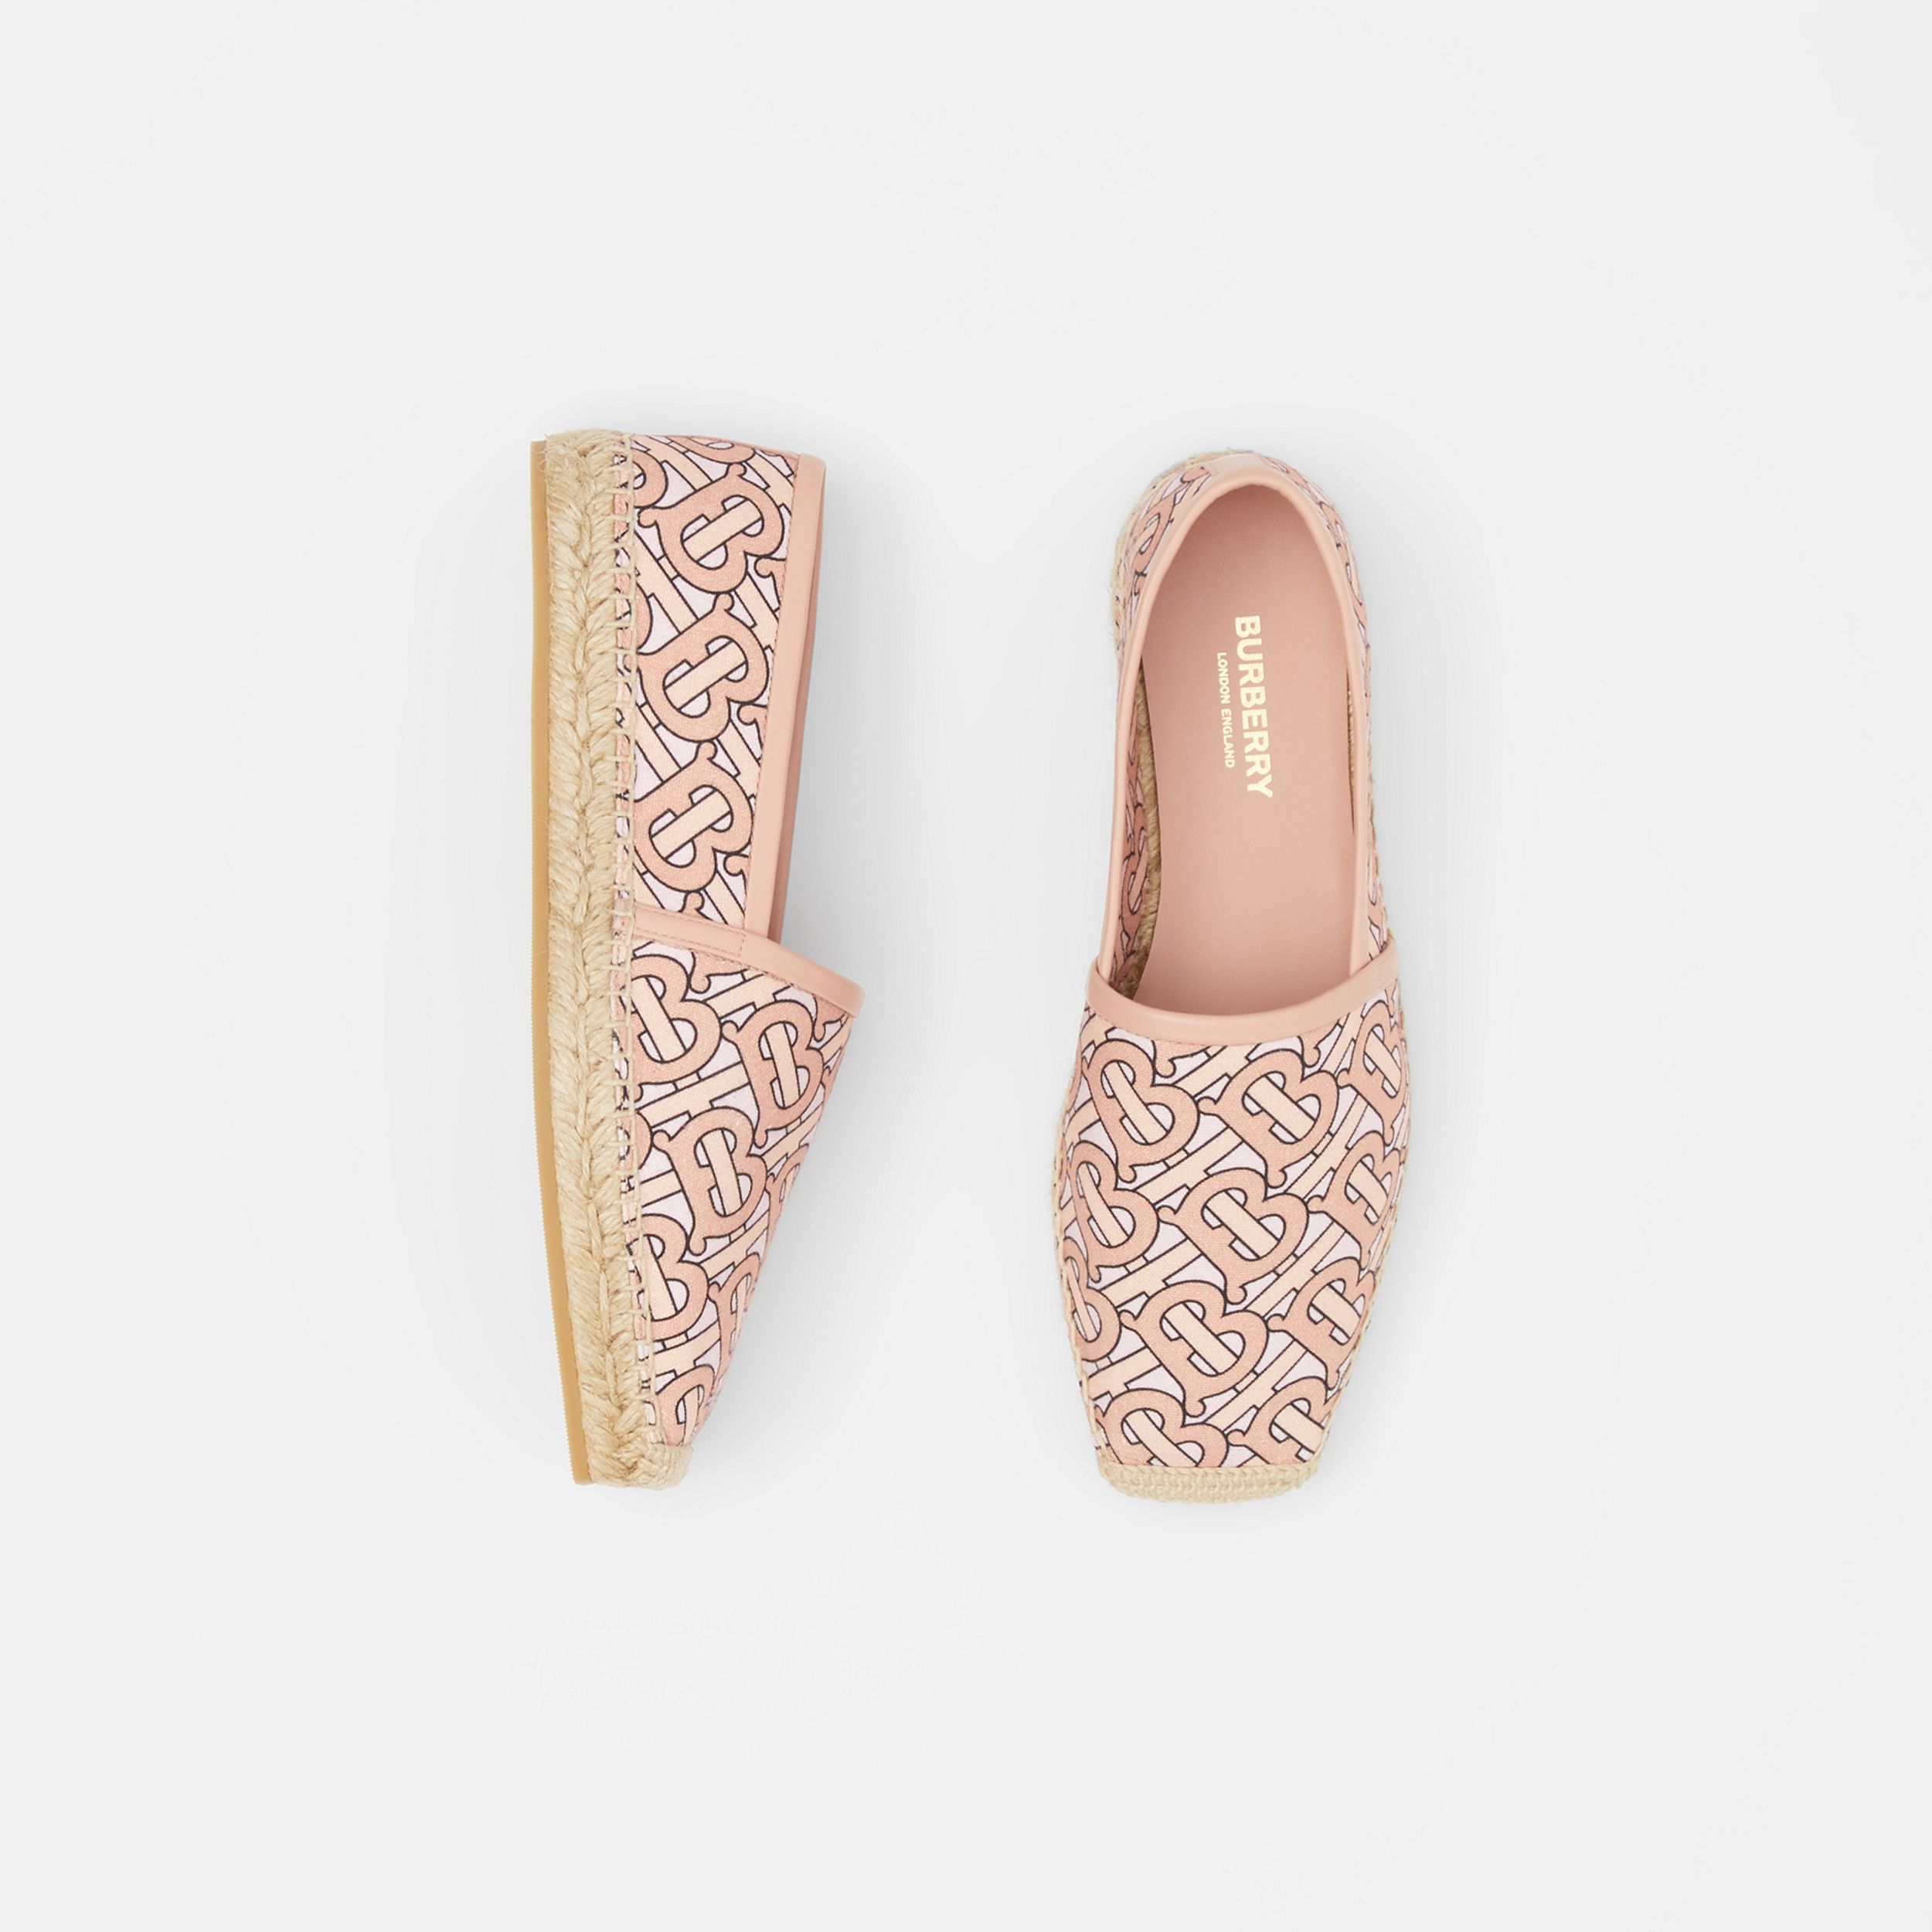 Monogram Print Cotton Canvas Espadrilles in Pale Copper Pink - Women | Burberry - 1